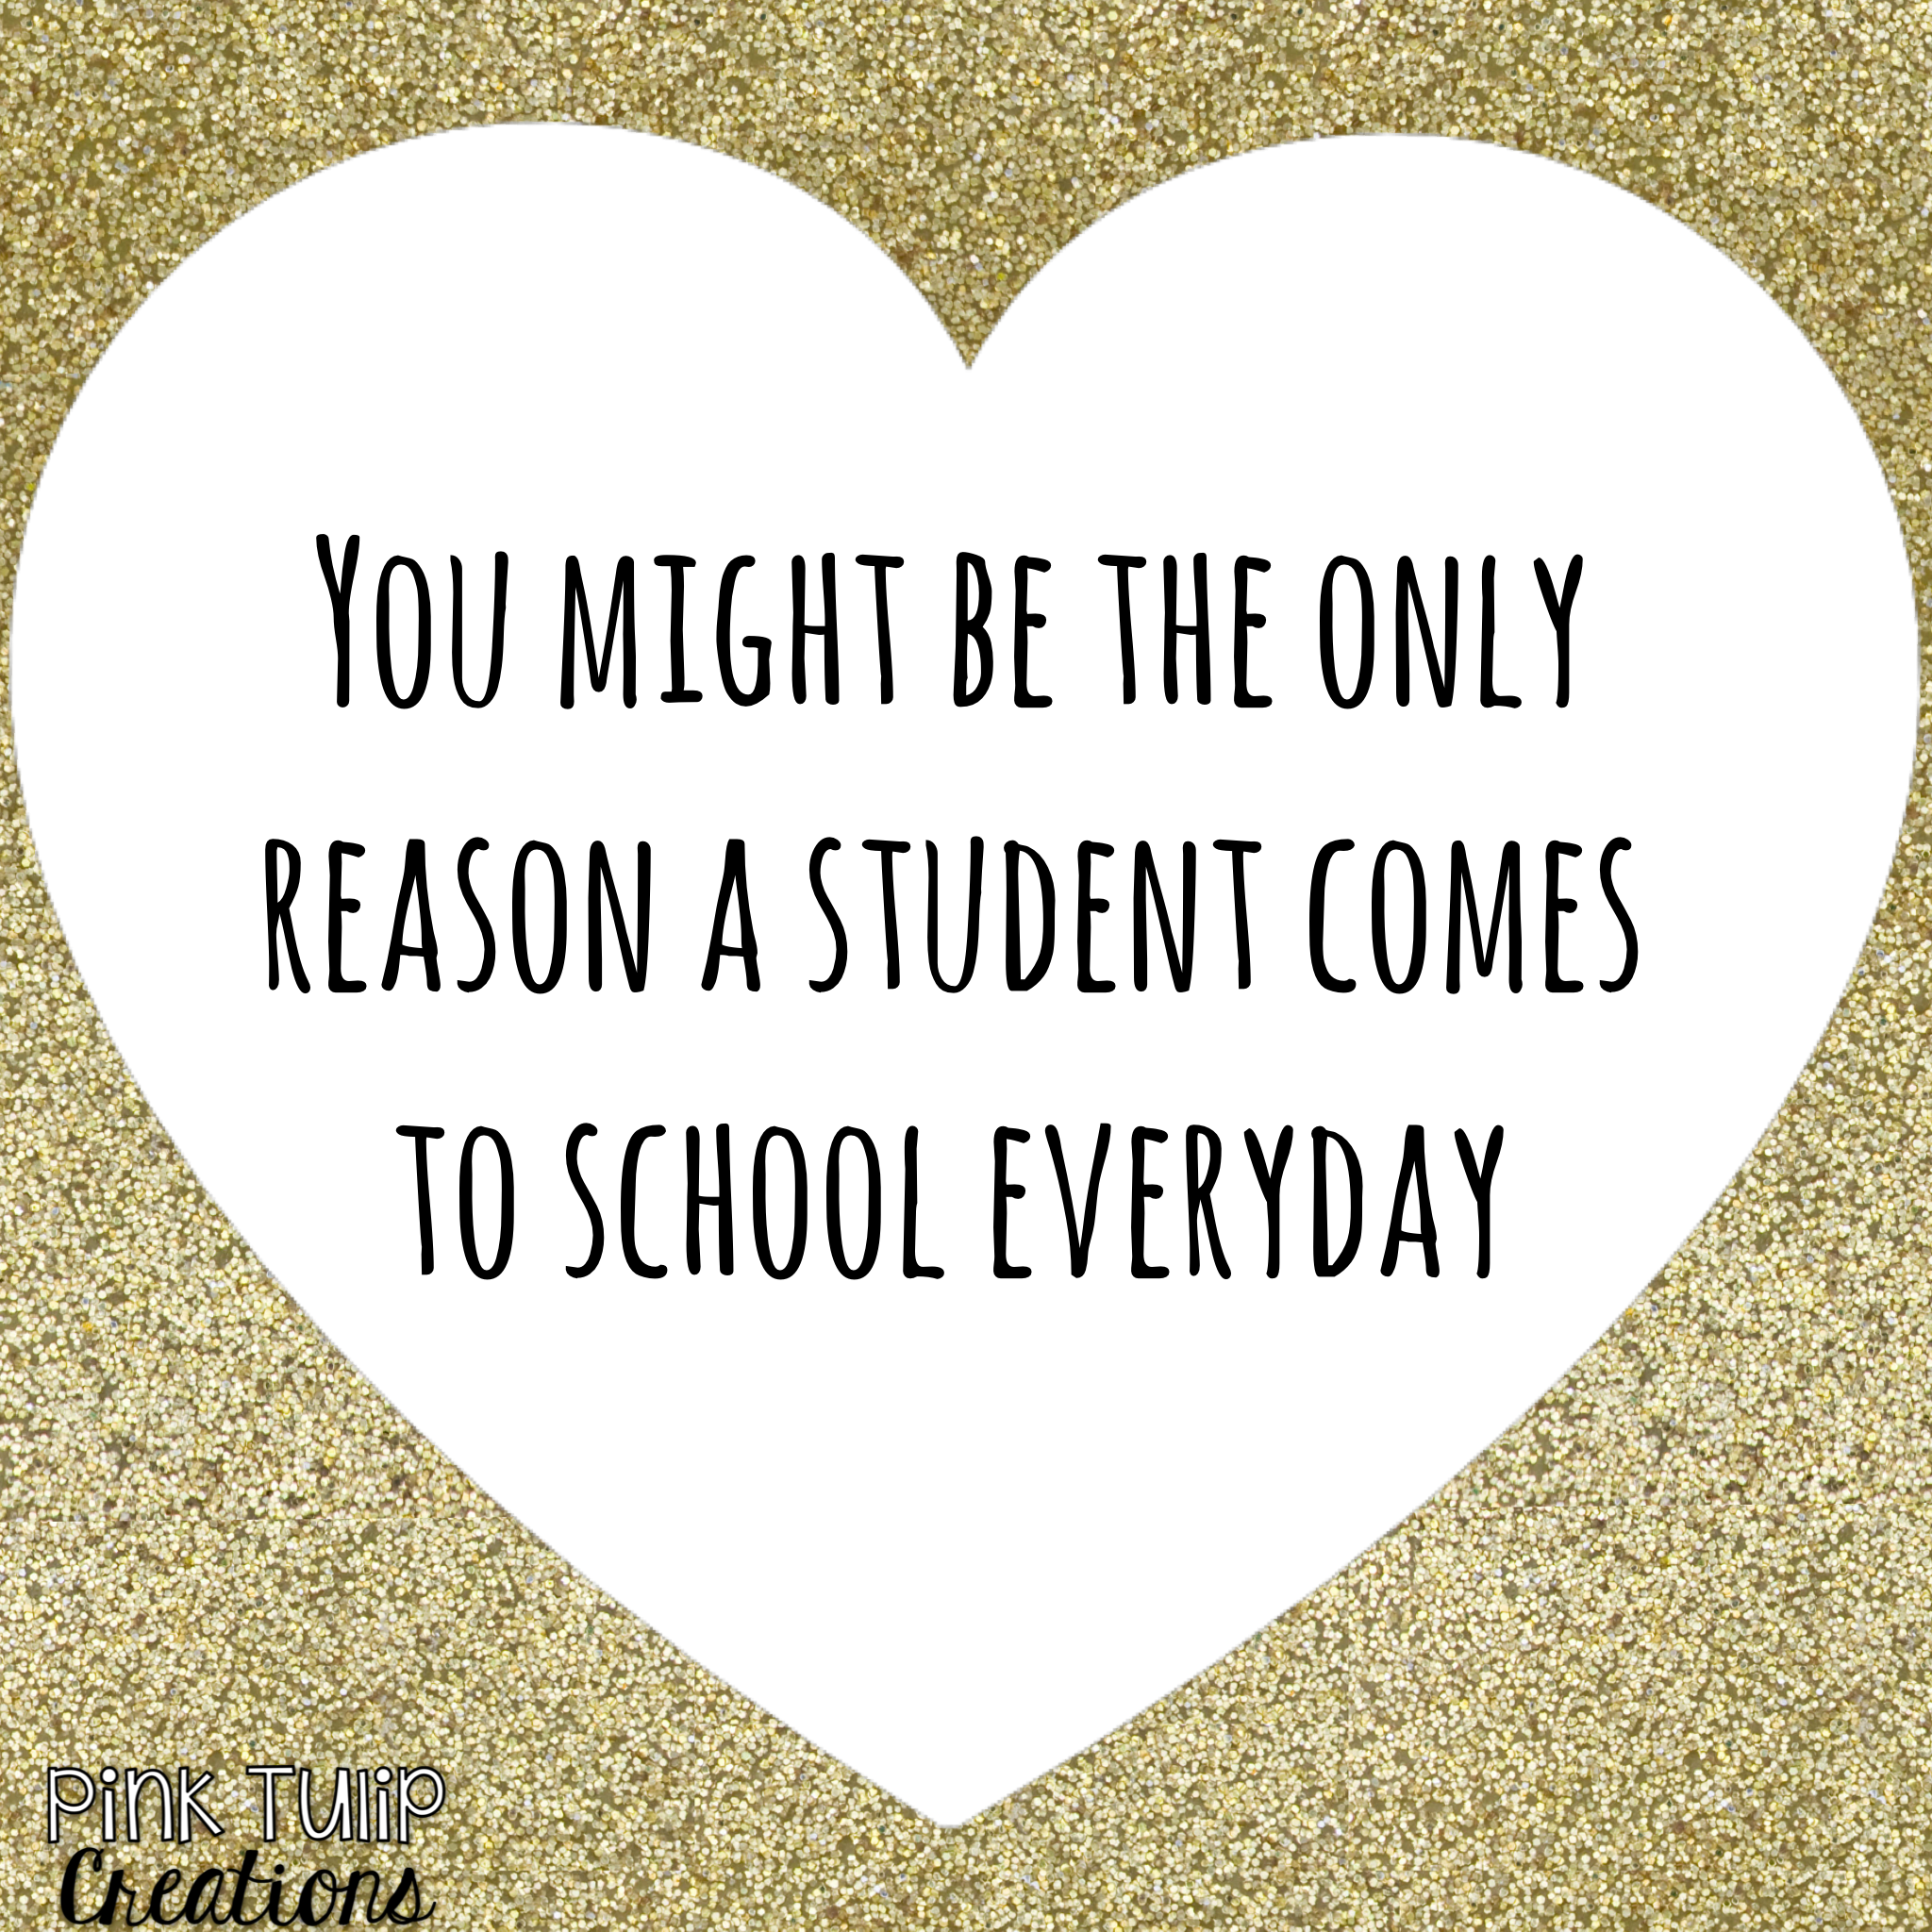 Educational Quotes For Teachers You Might Be The Only Reason A Student Comes To School Everyday